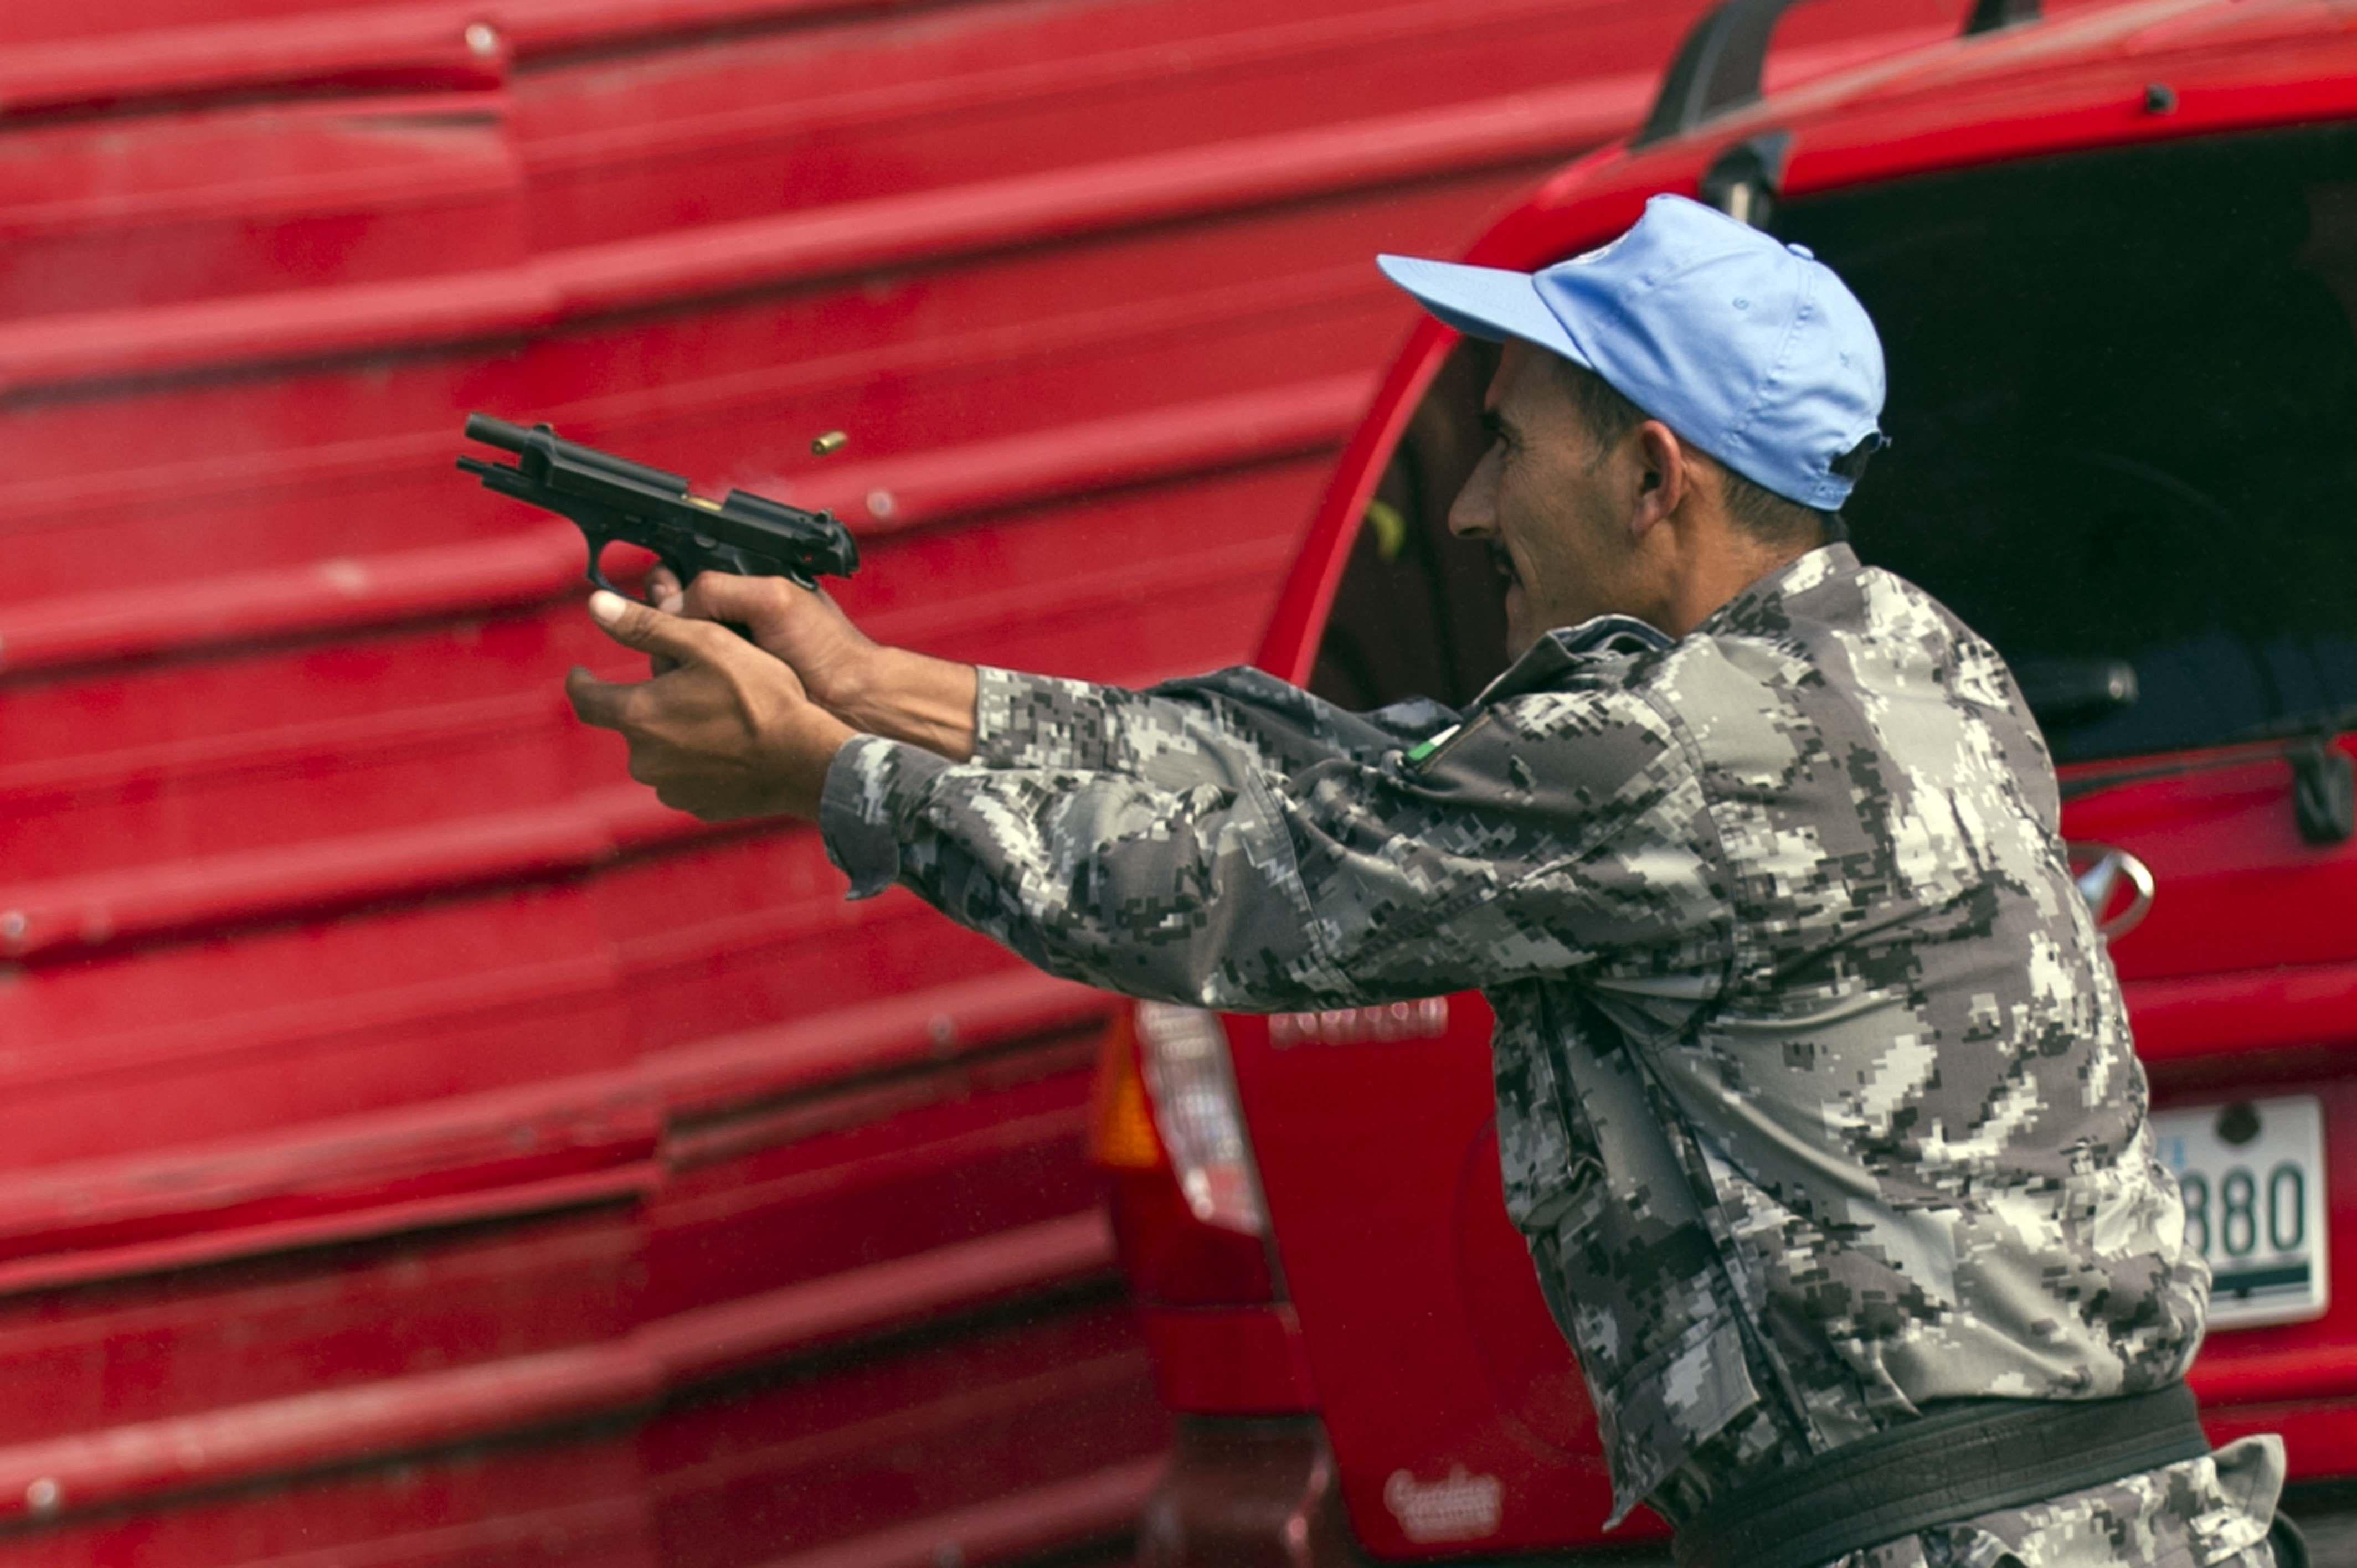 A member of the United Nations Stabilization Mission in Haiti (MINUSTAH) fires his gun against demonstrators during clashes in a protest against the government of President Michel Martelly in Port-au-Prince, on December 12, 2014